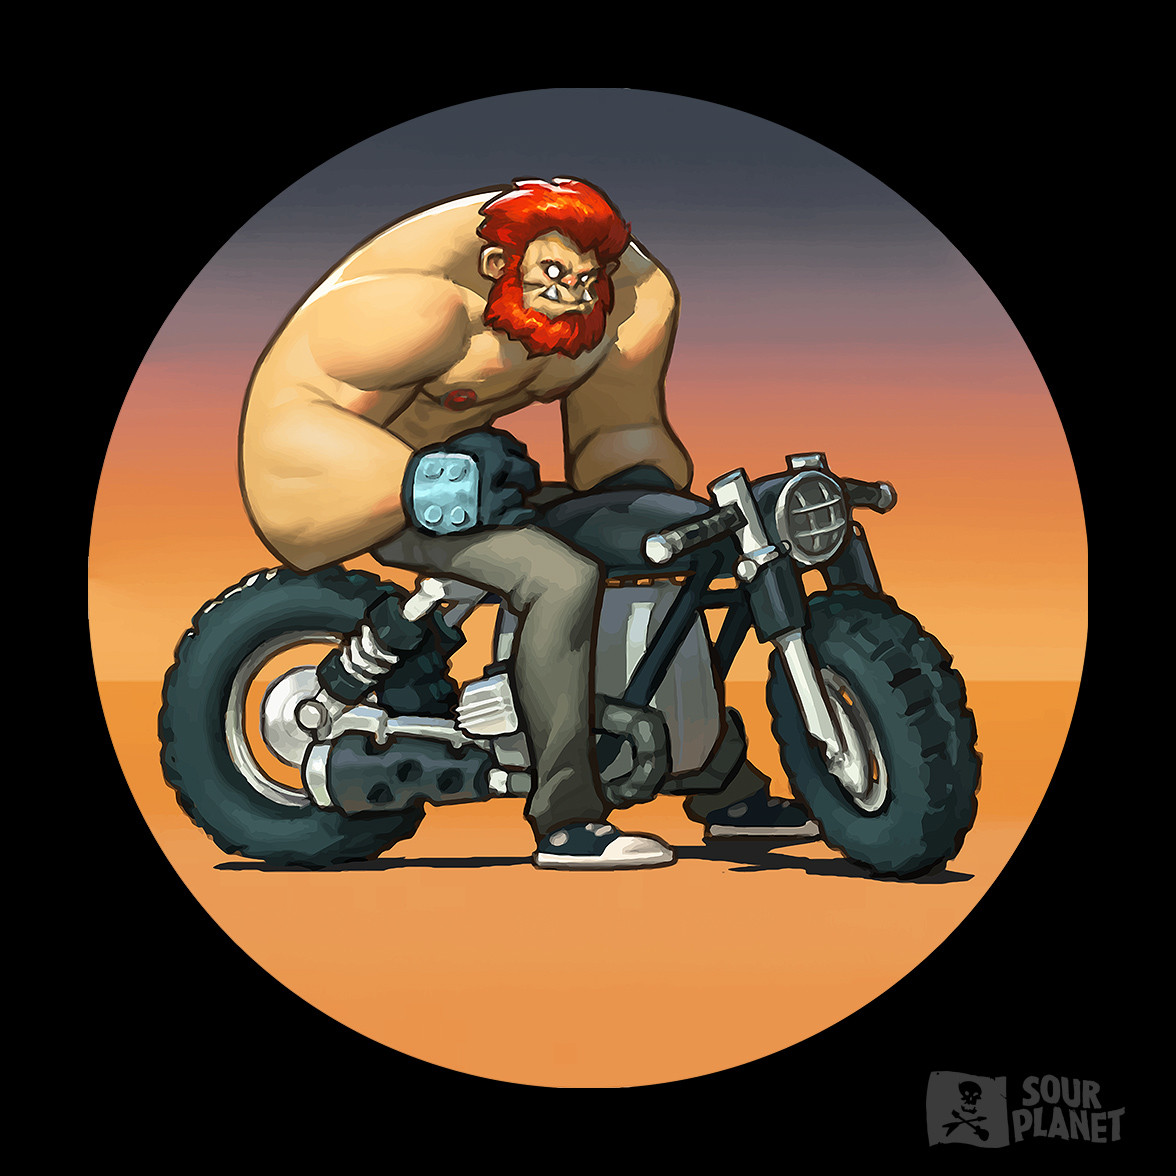 The brand mascot, pretty much. Doofy, shirtless, meatball.